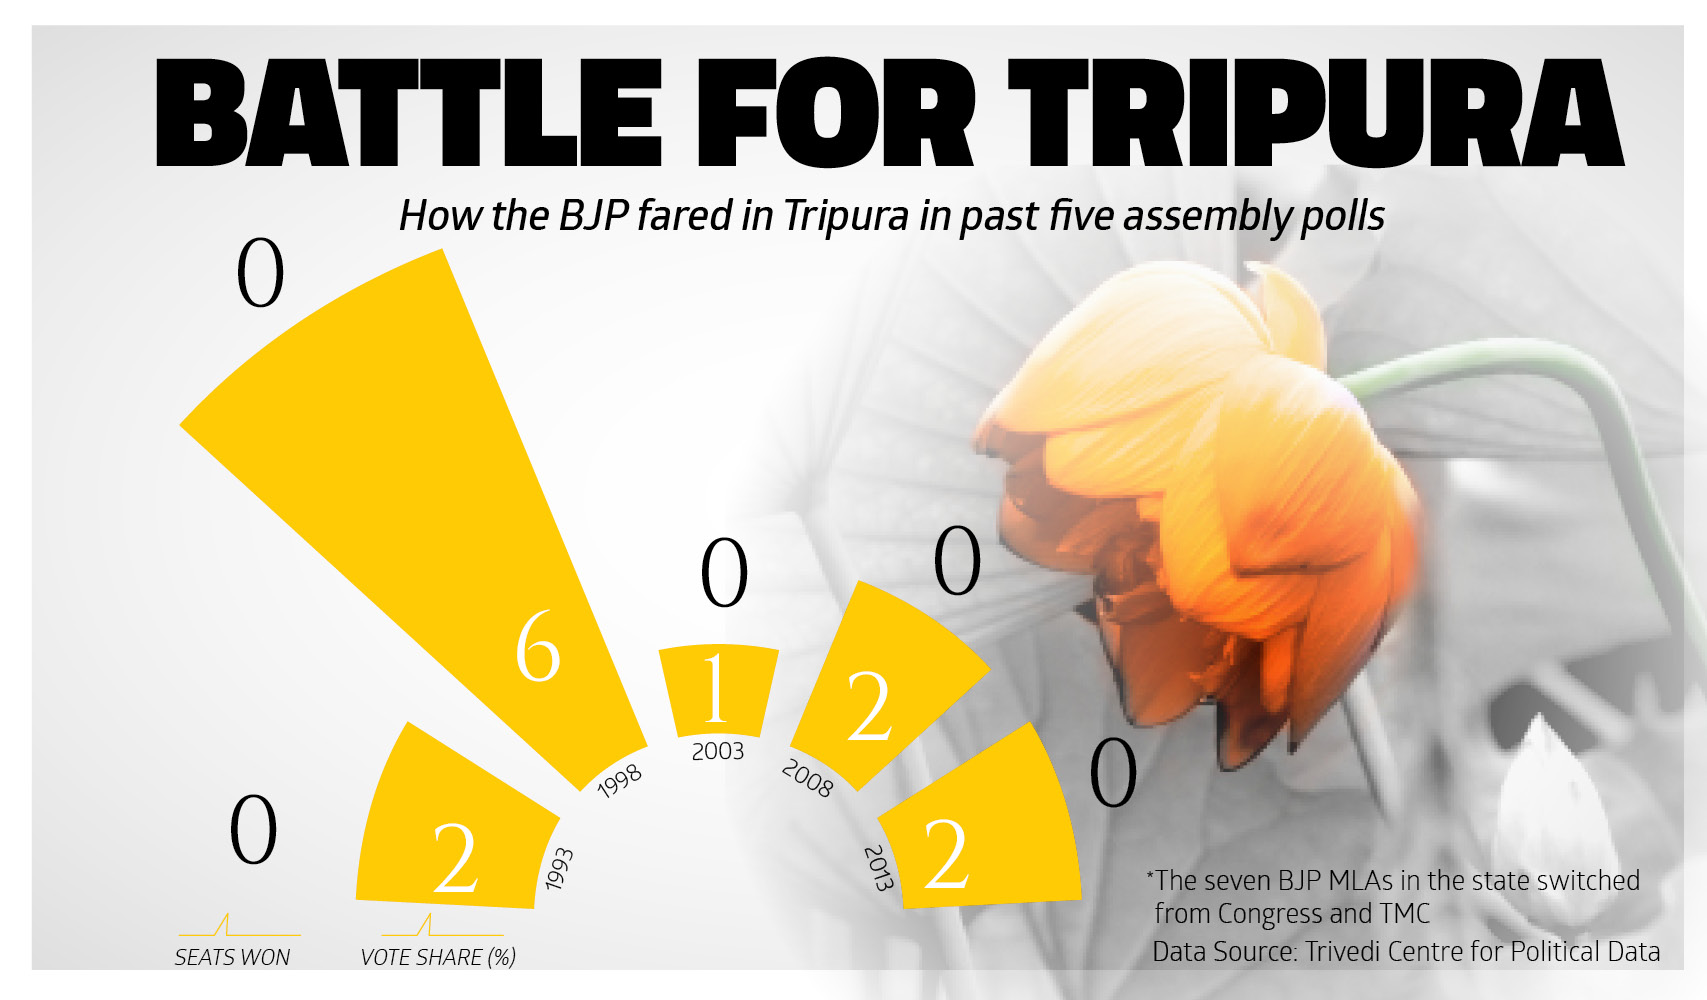 Tripura Assembly Elections 2018 - A look at the battleground